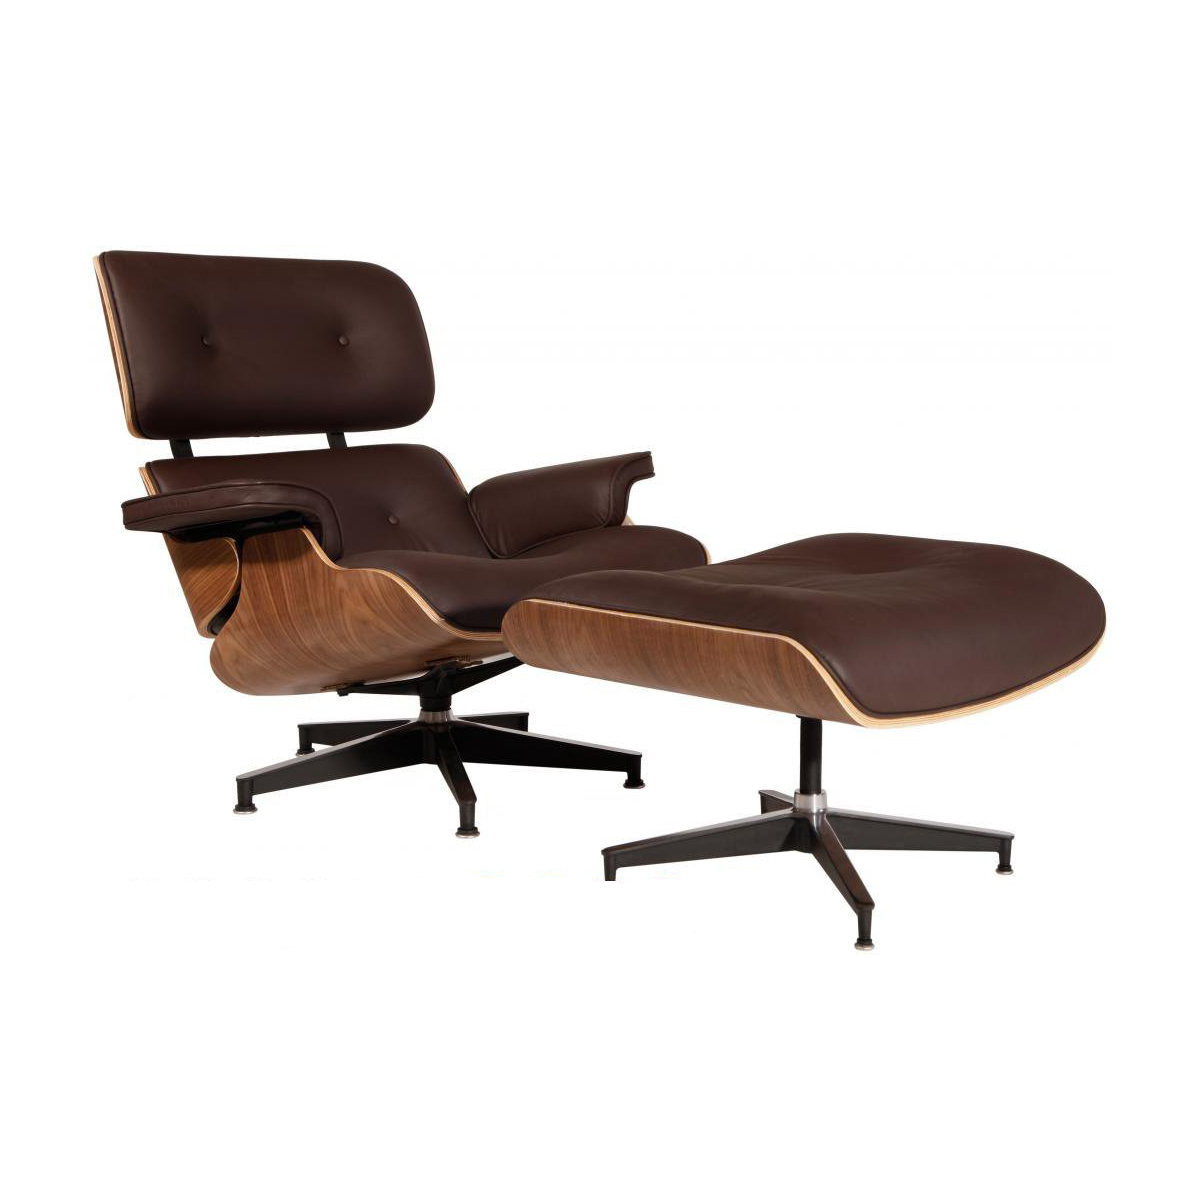 eMod - Mid Century Eames Style Lounge Chair & Ottoman Replica Italian Leather Brown Walnut